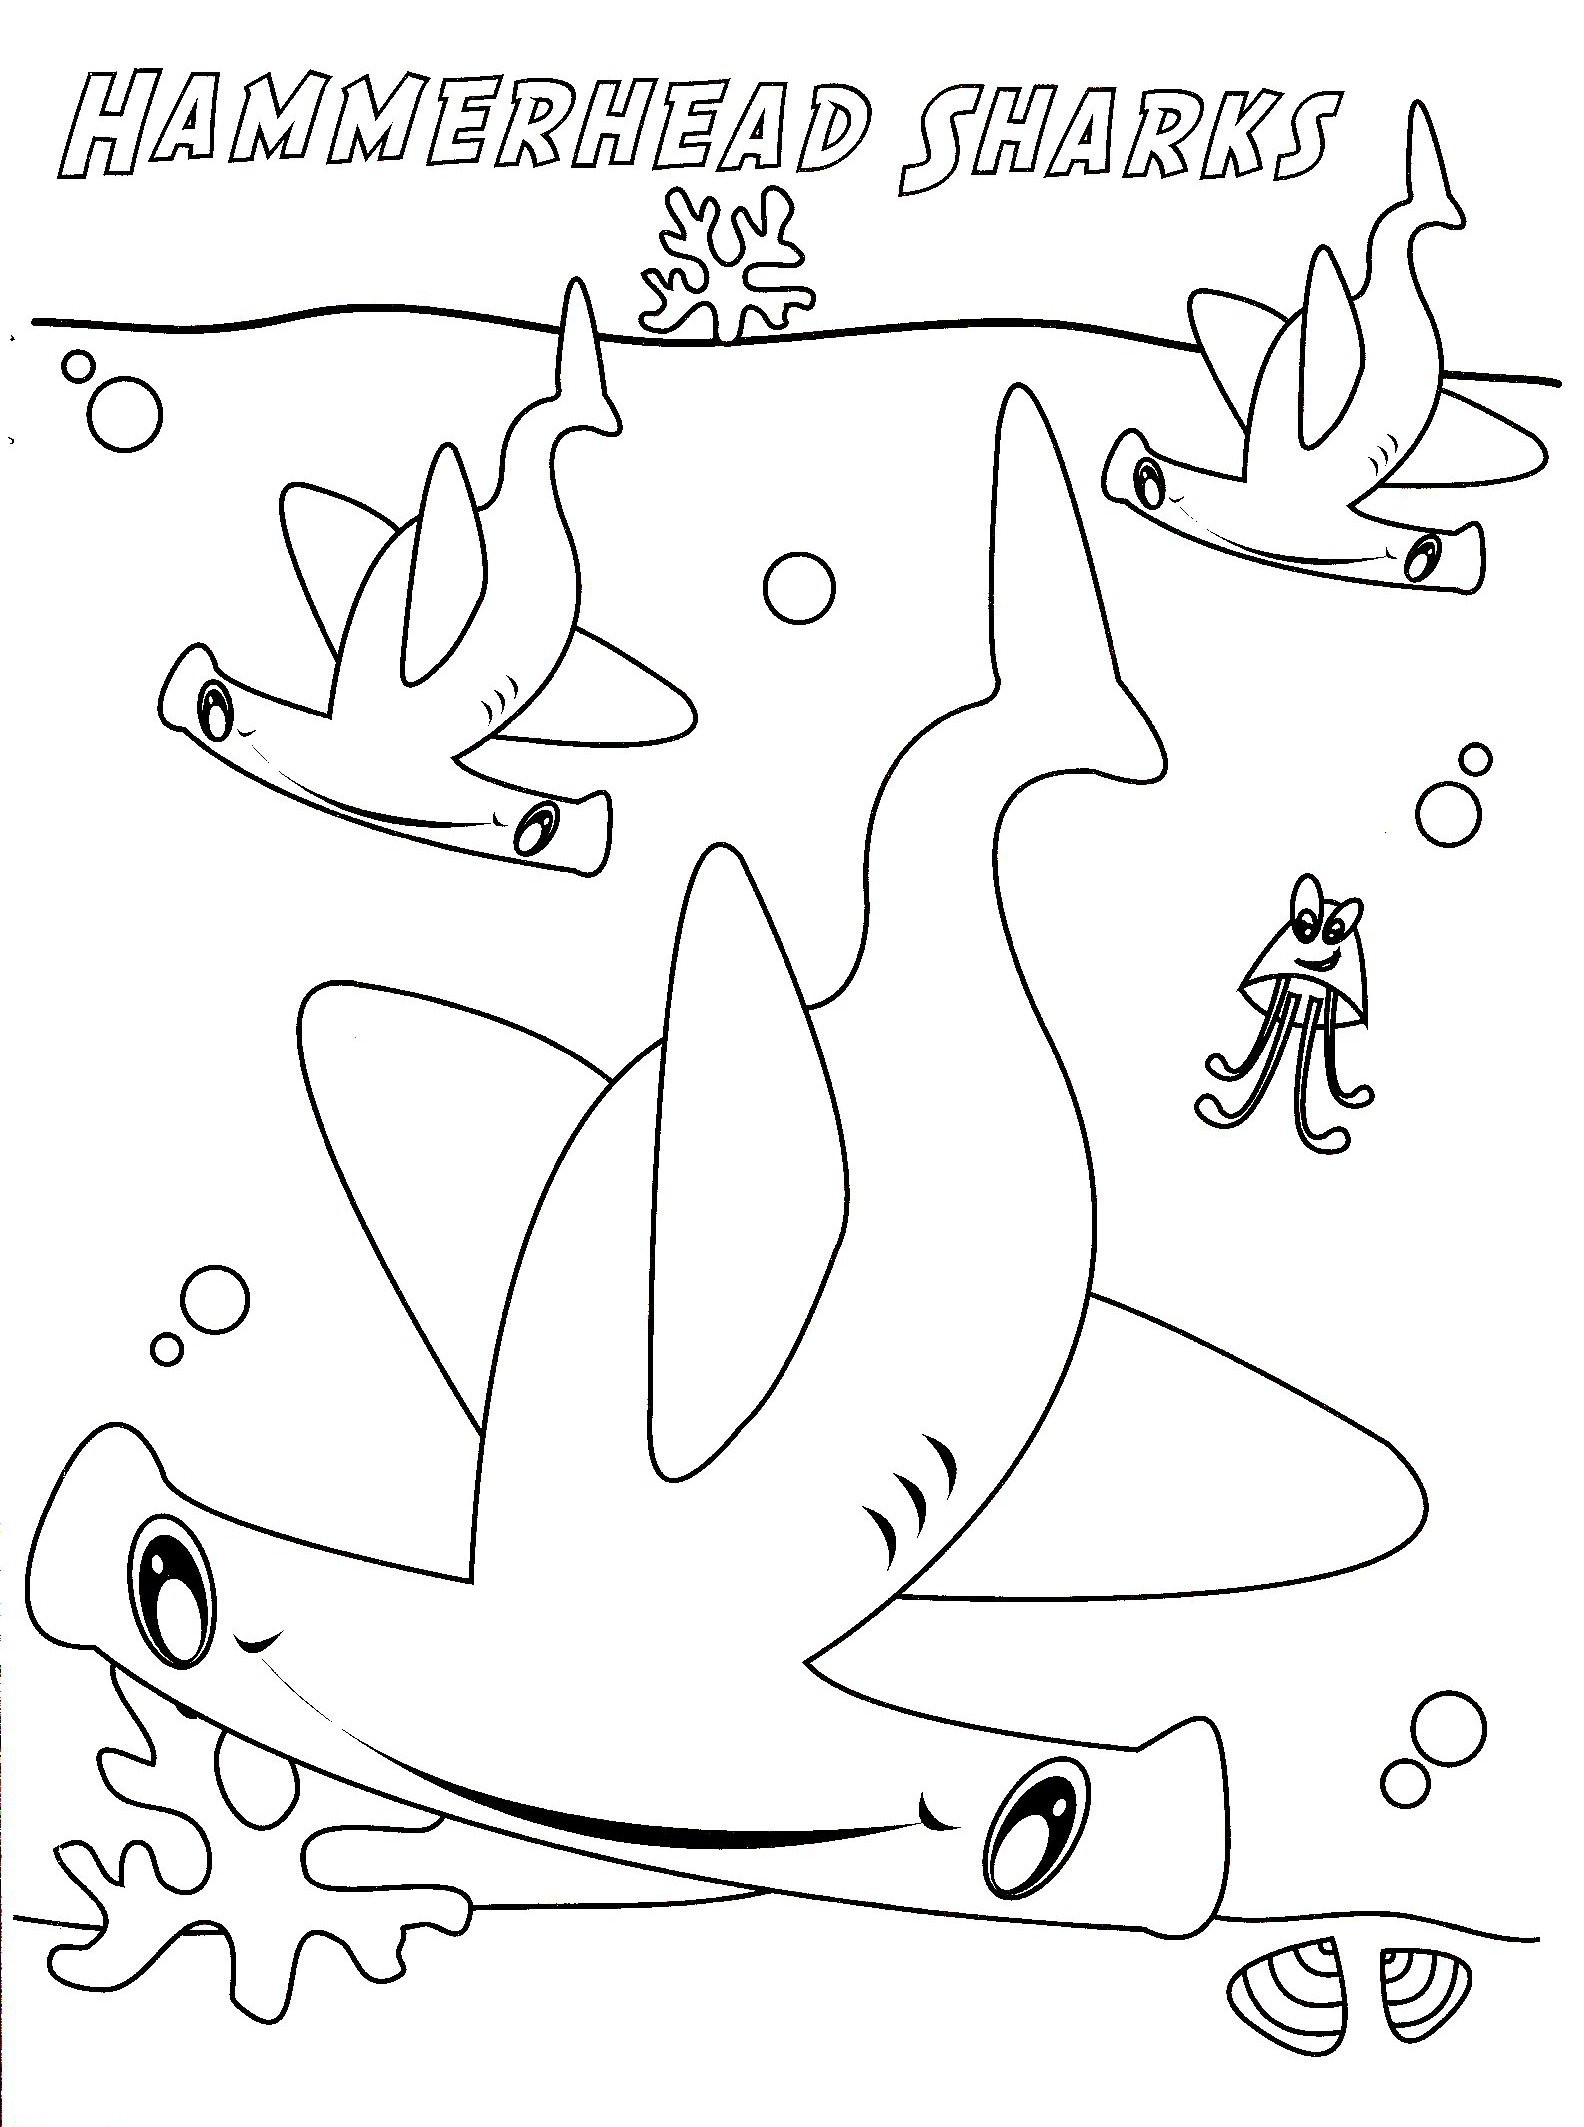 Shark Coloring Pages For Preschoolers At Getdrawings